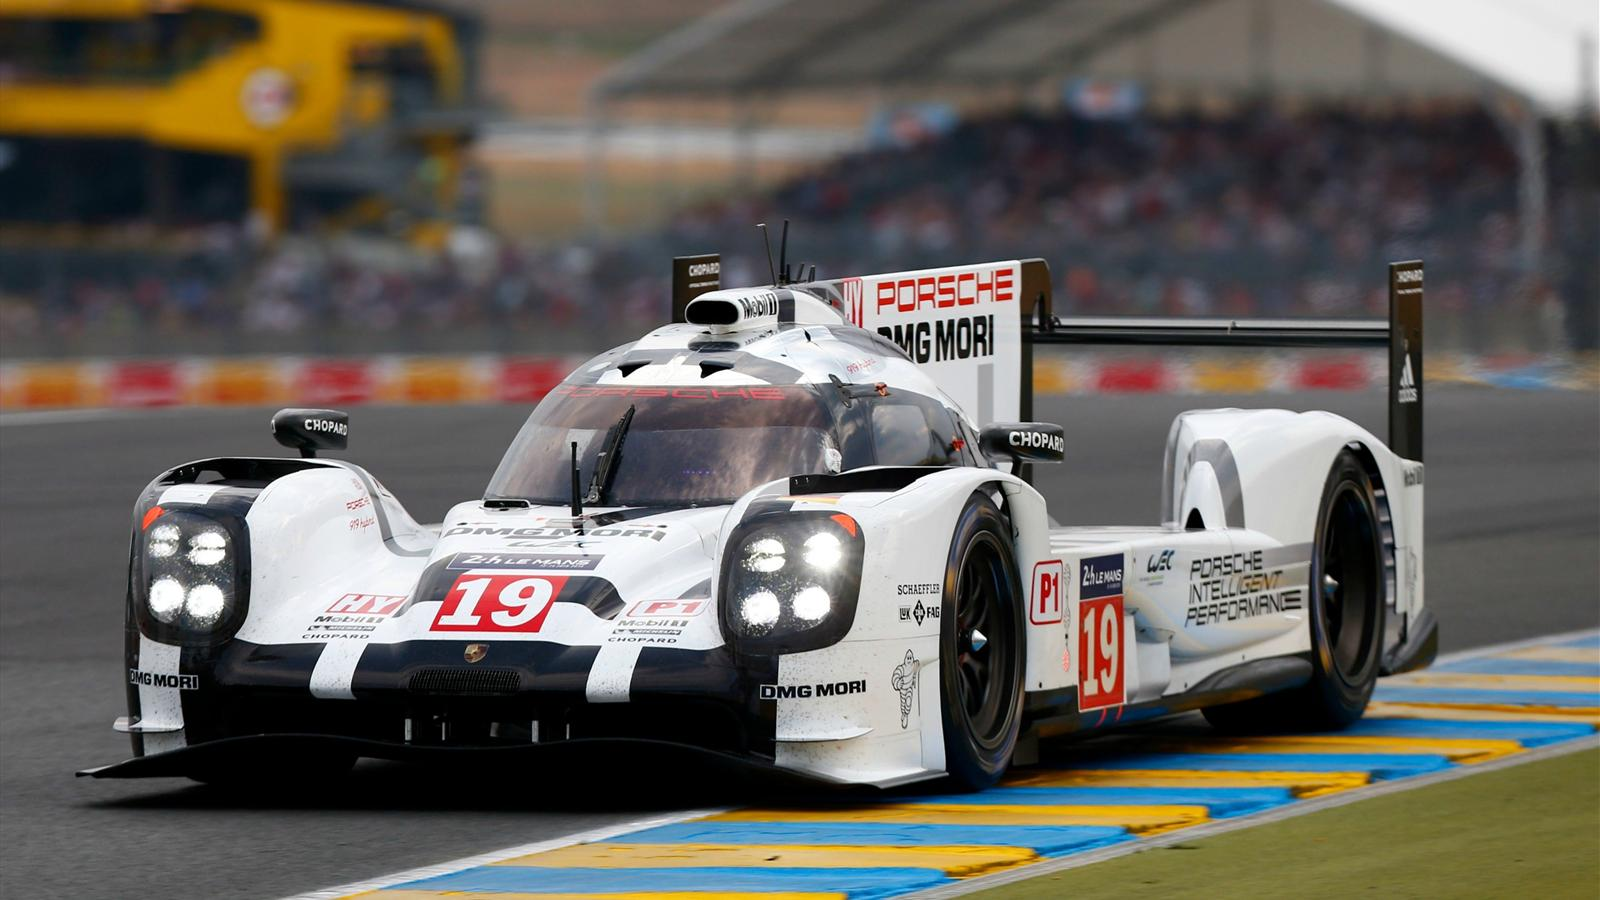 comment porsche d finitivement fait plier audi le film de la journ e 24 heures du mans. Black Bedroom Furniture Sets. Home Design Ideas